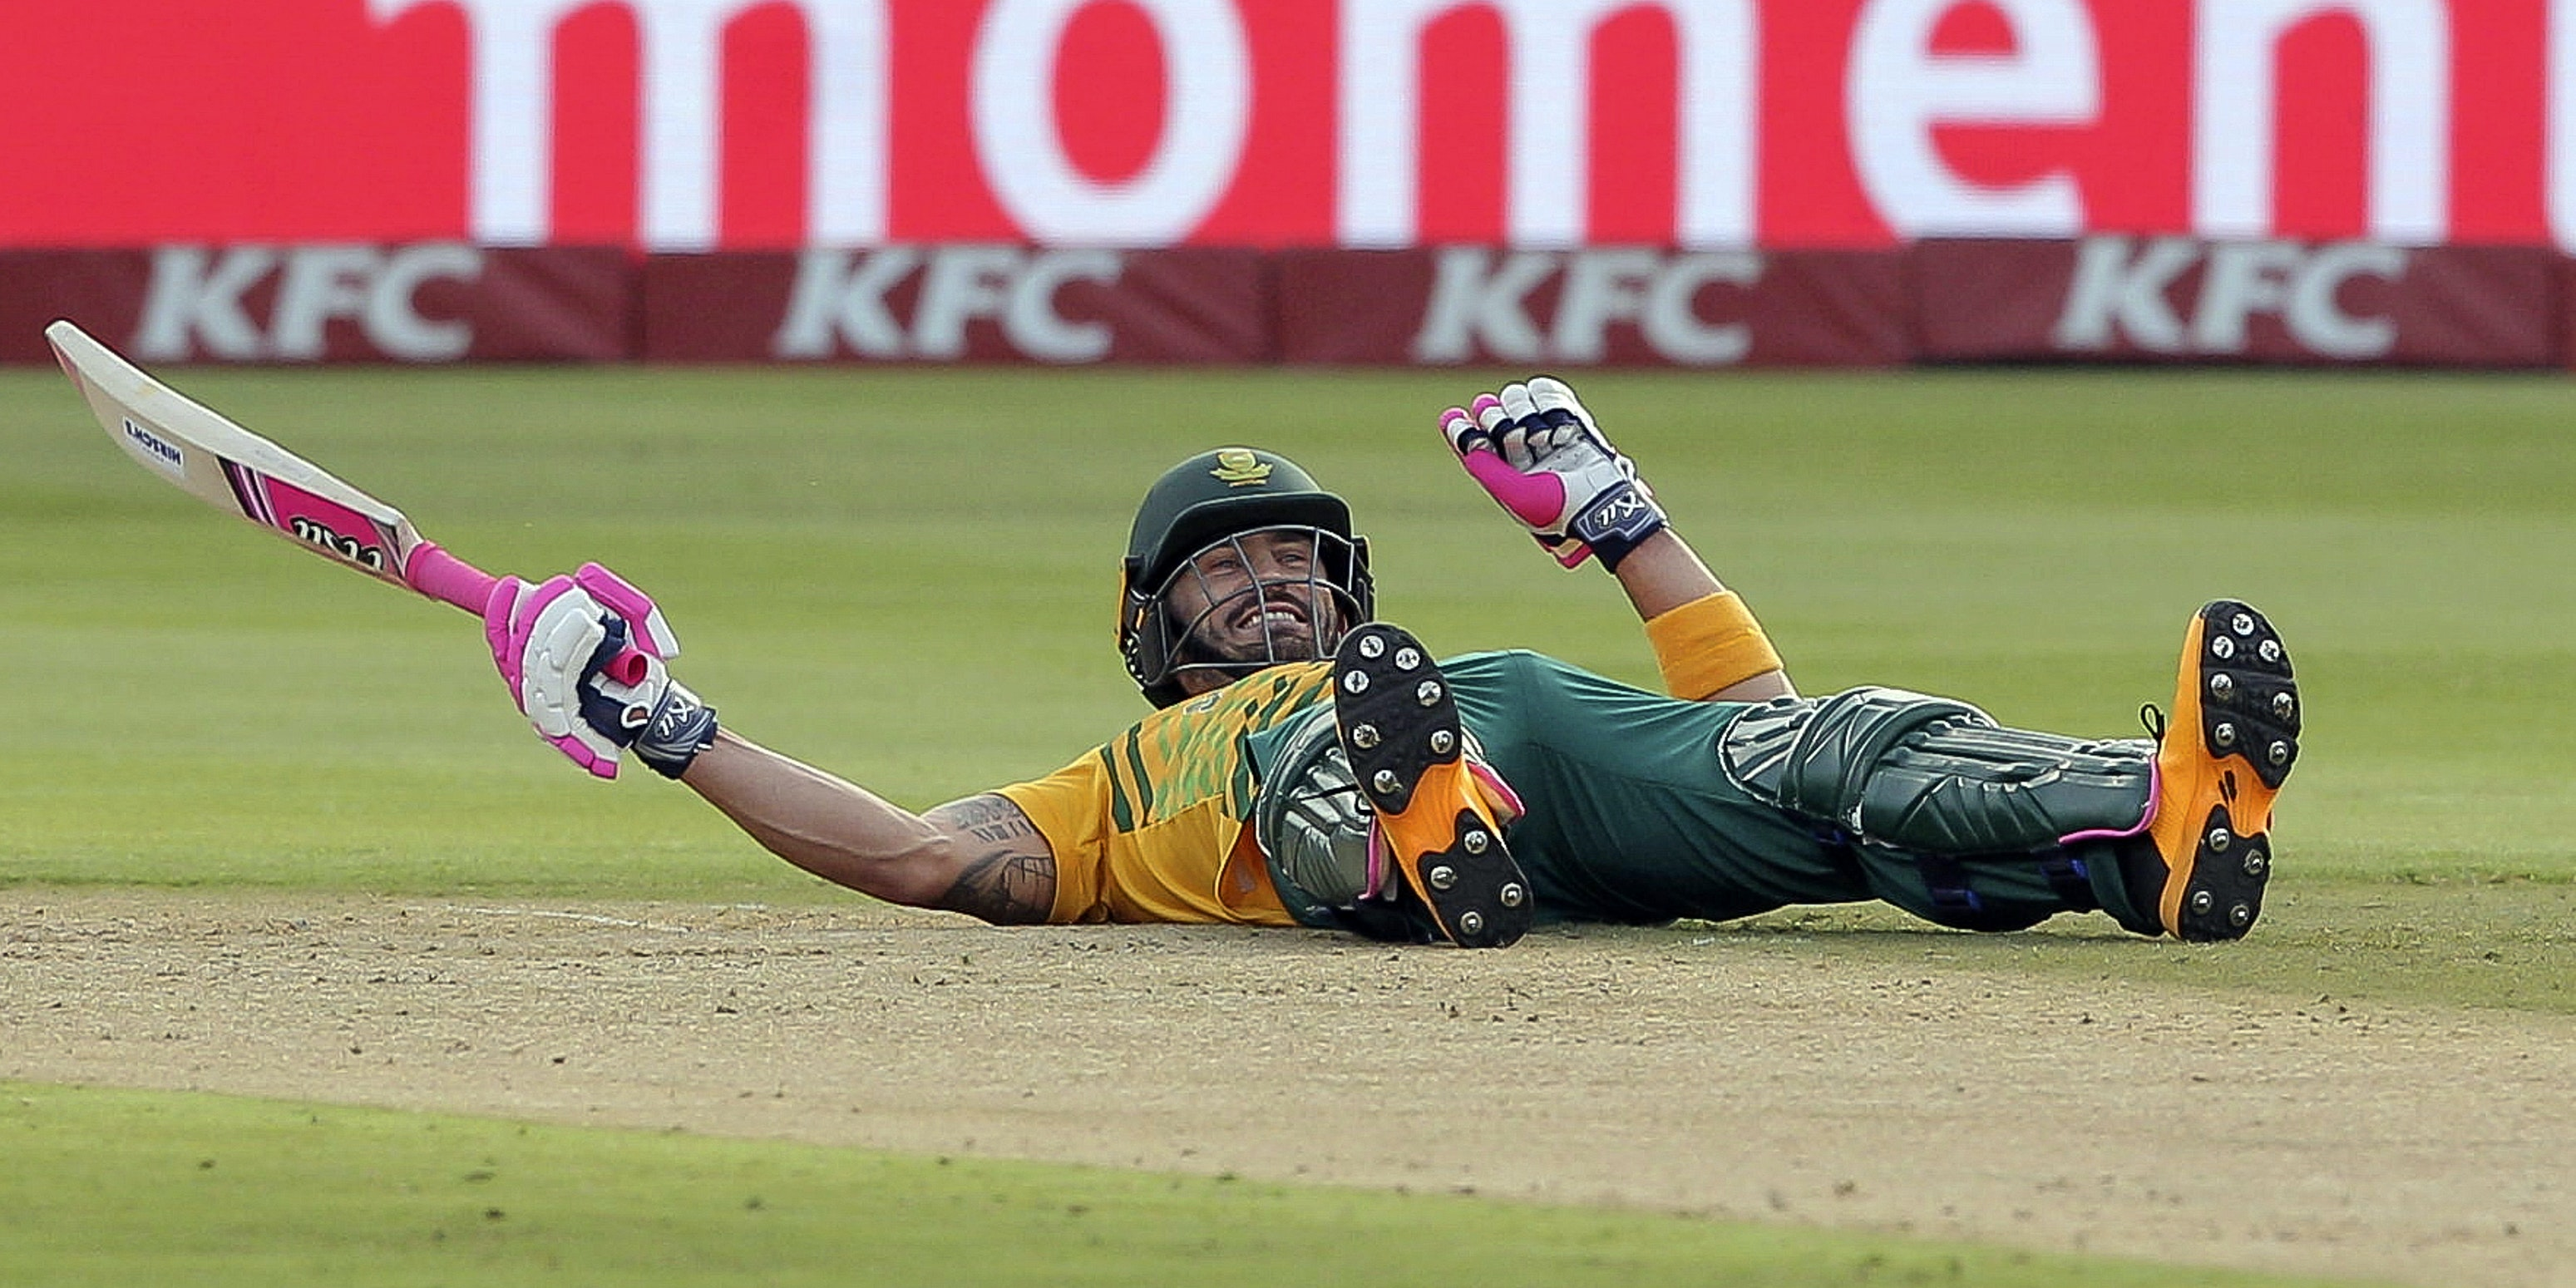 South Africa's ranks weakened further after resting Faf du Plessis for ODIs